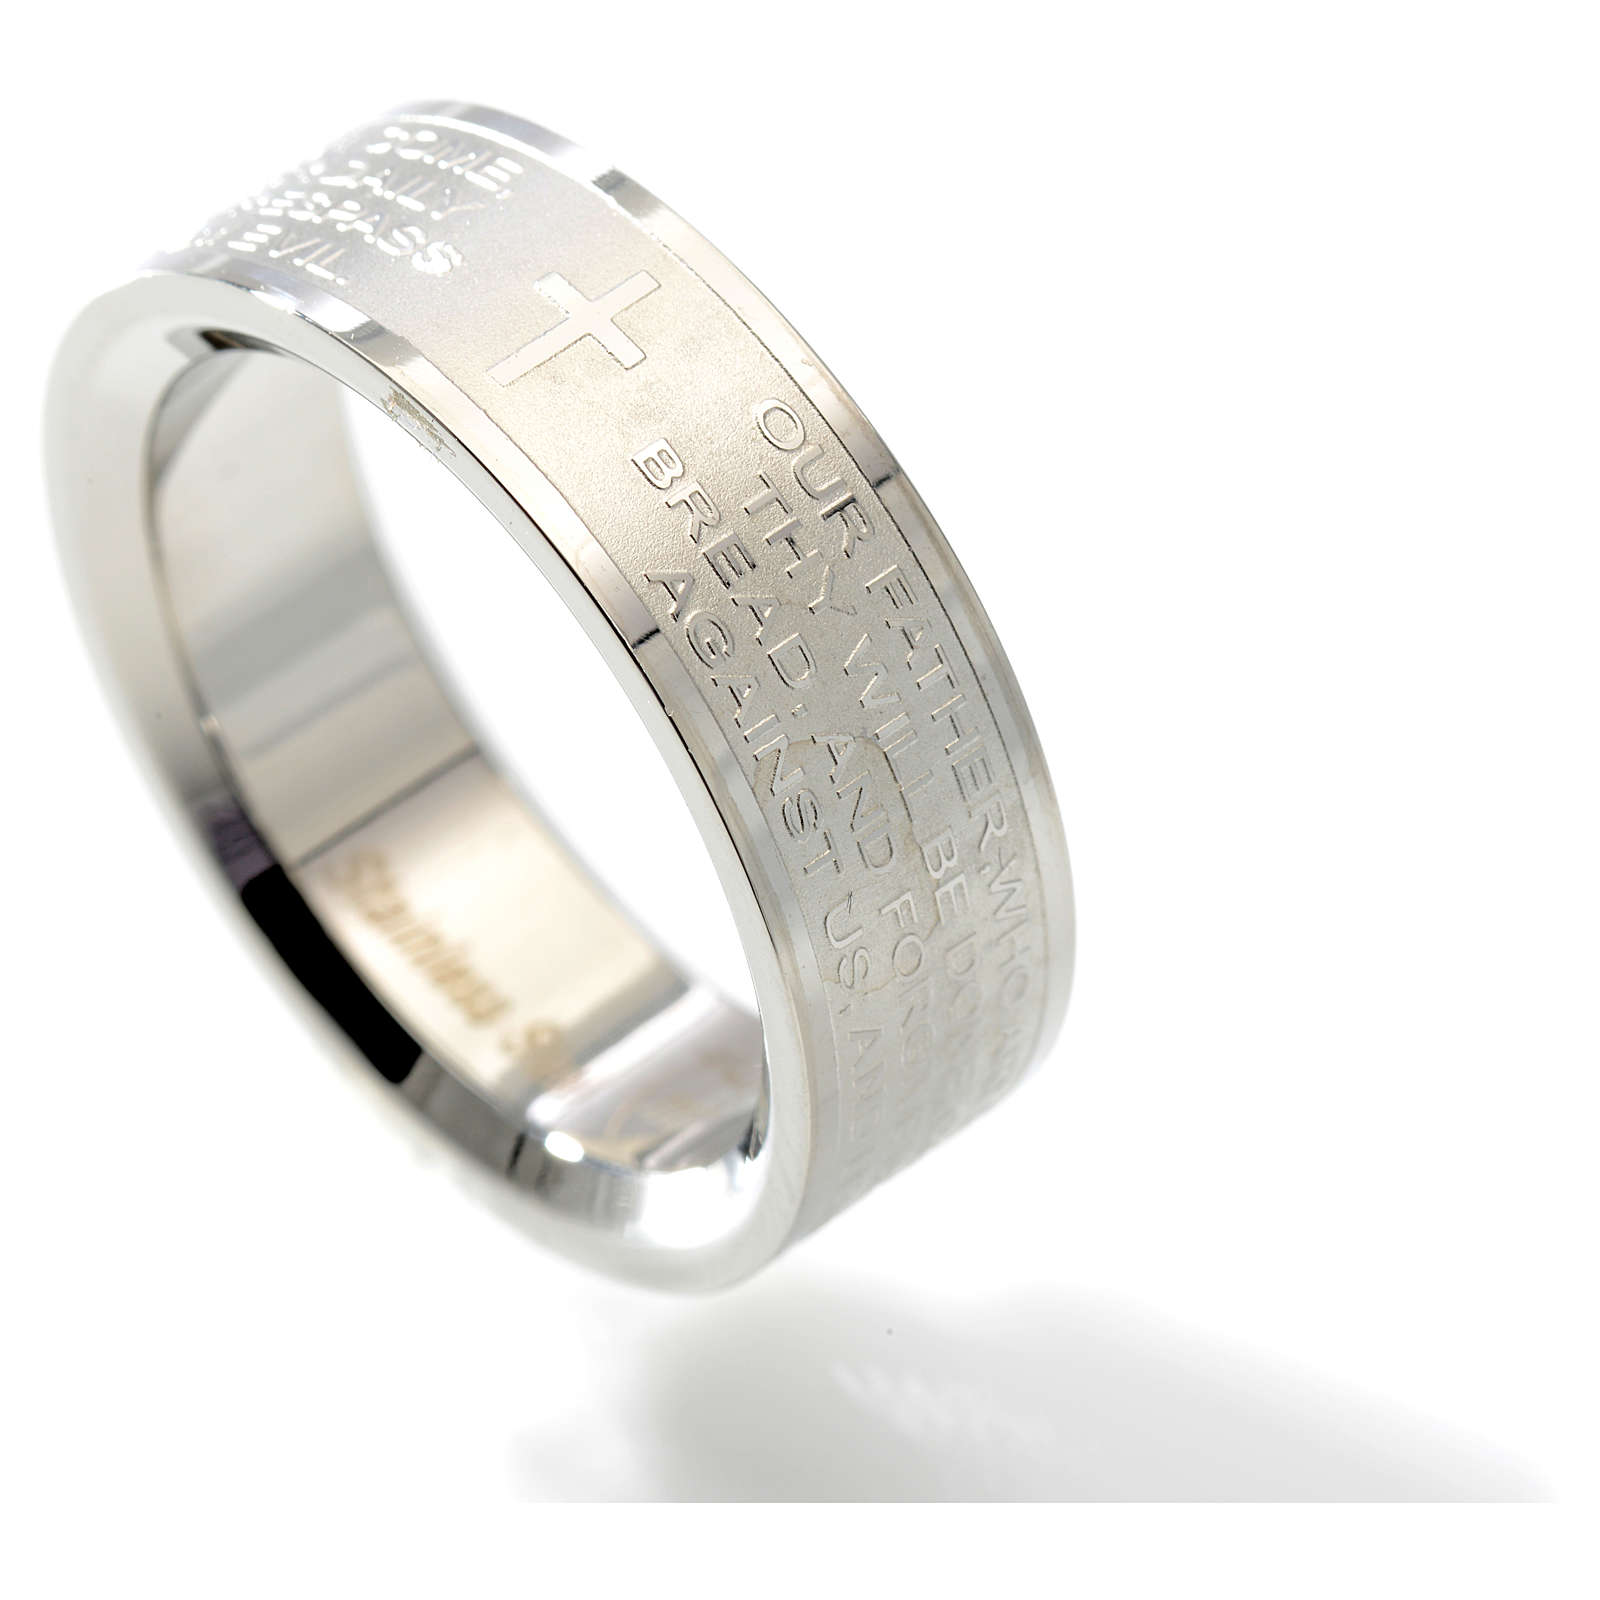 Our Father prayer ring in English - stainless steel LUX 3